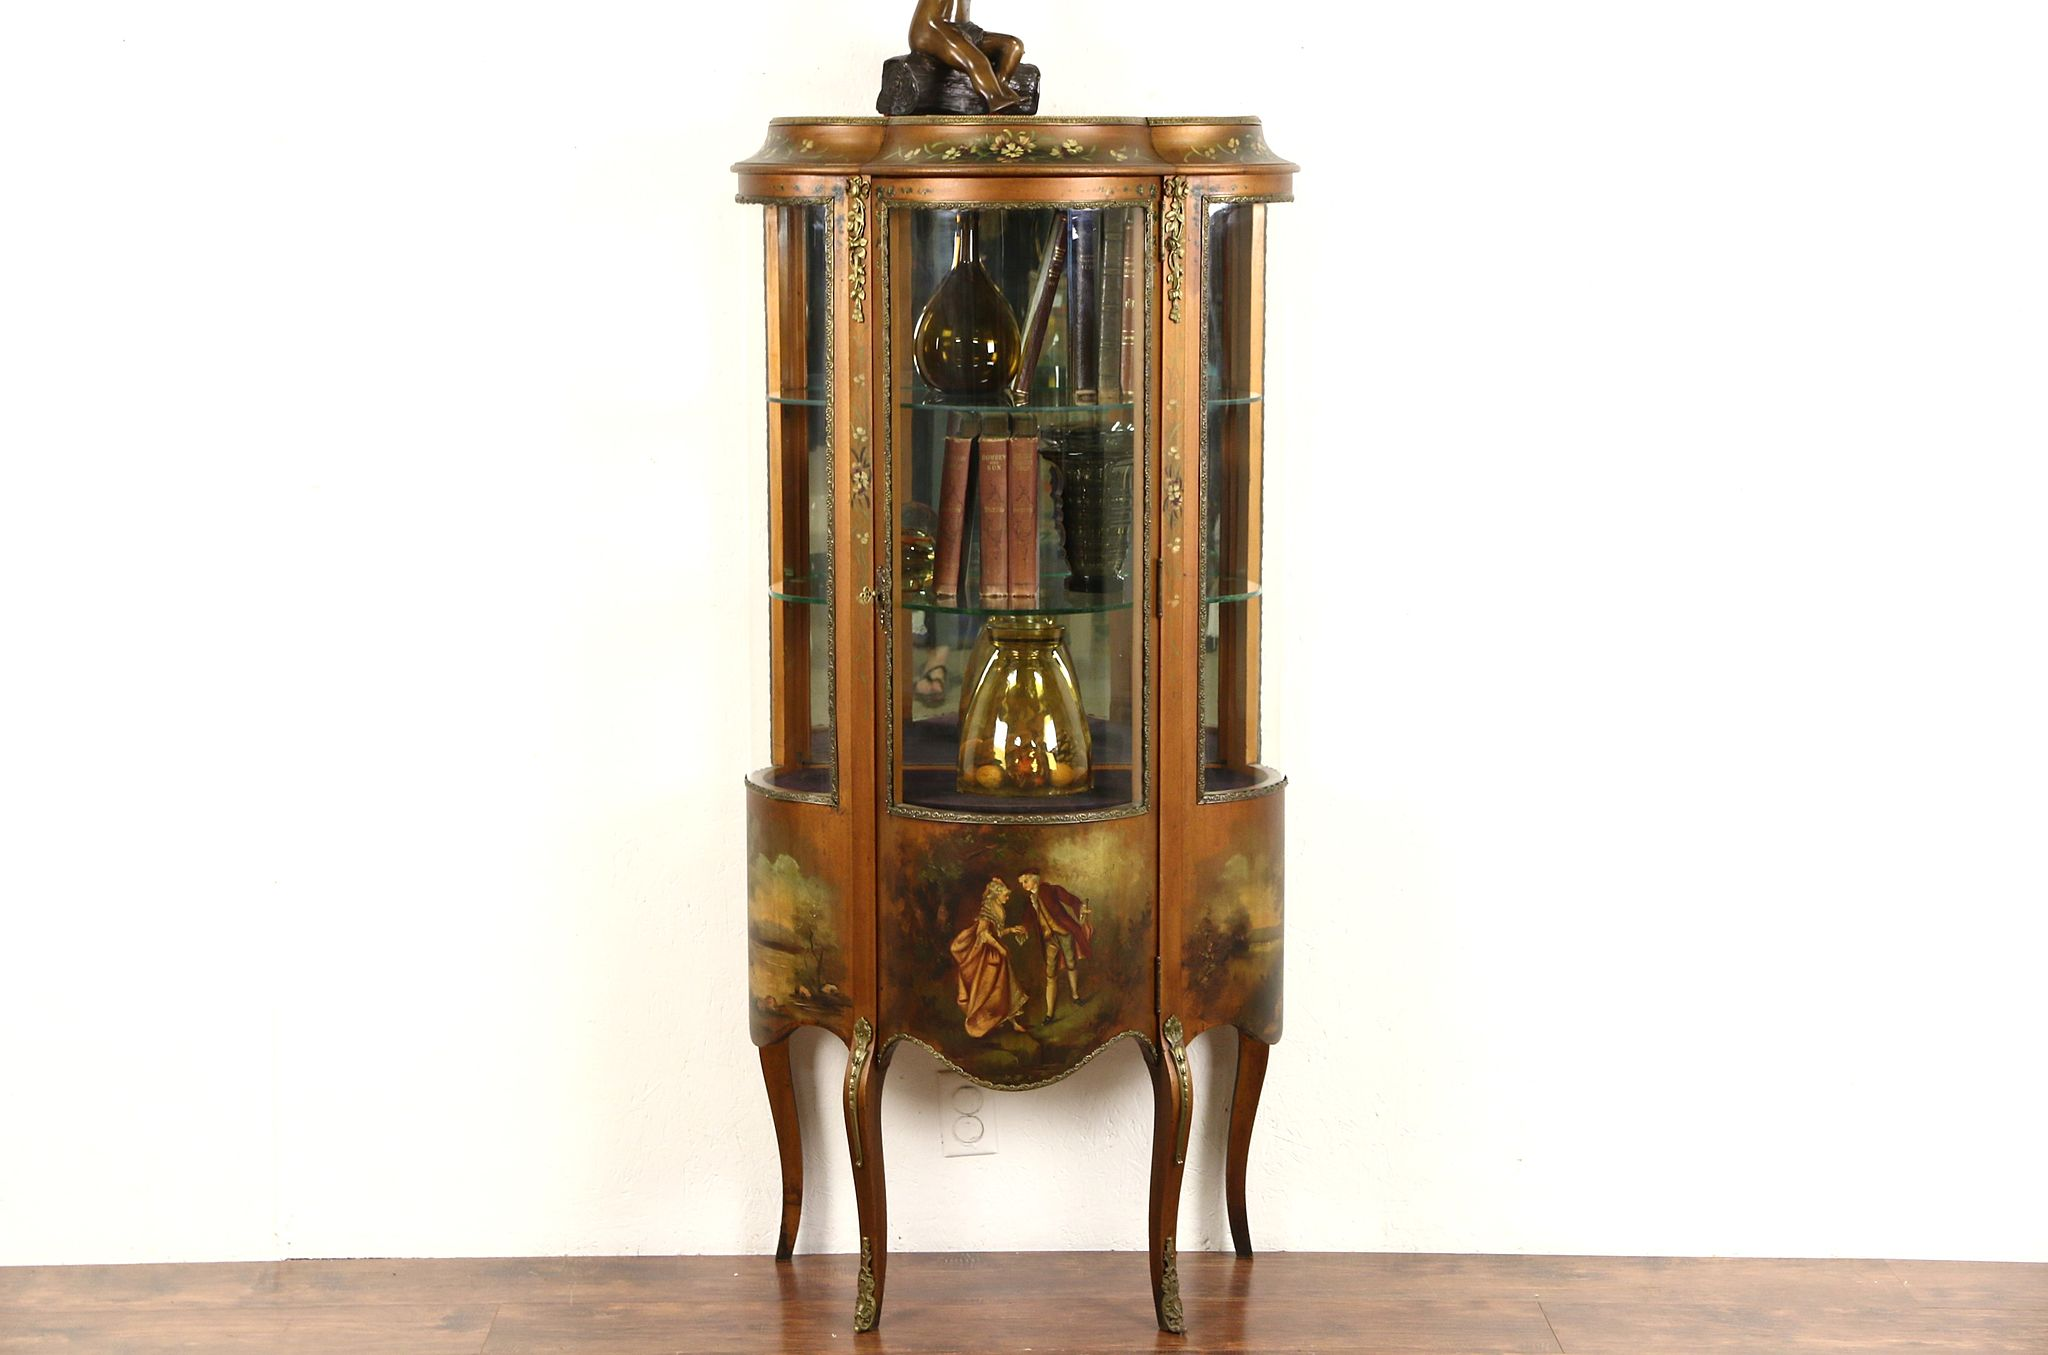 Genial Vernis Martin 1900 Antique French Vitrine Or Curio Display Cabinet, Hand  Painted